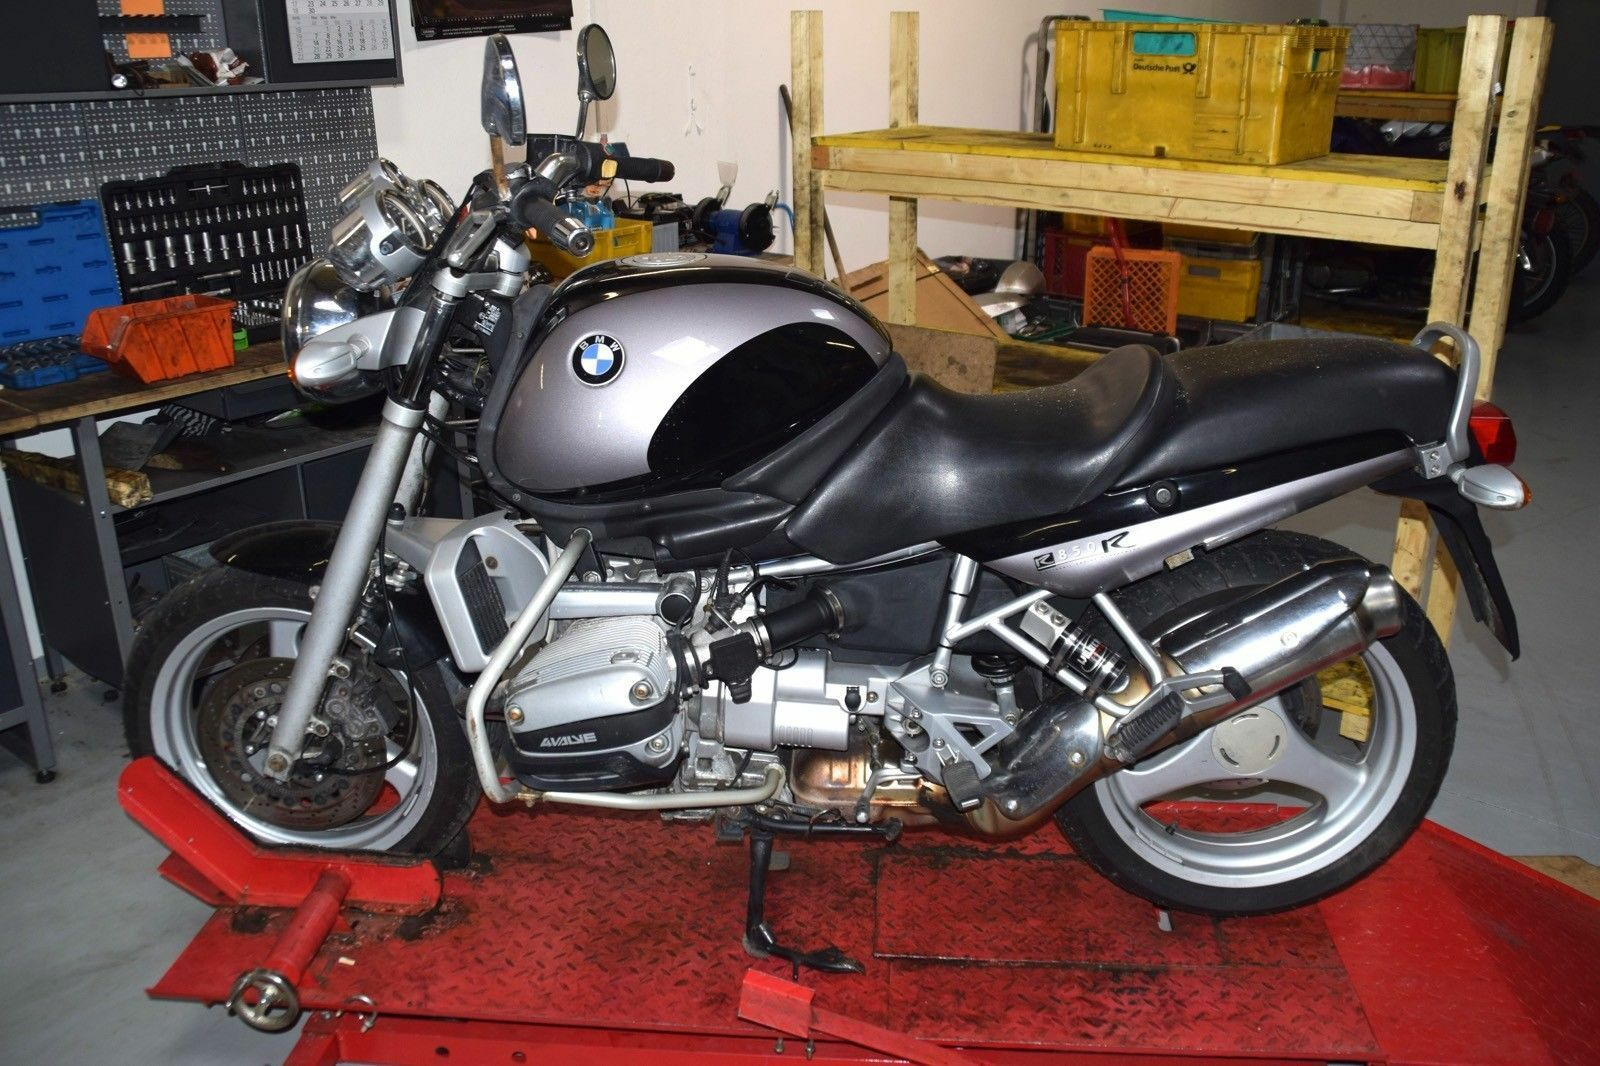 Bmw r 850 rt 259 bj.1998 - accouplement complet